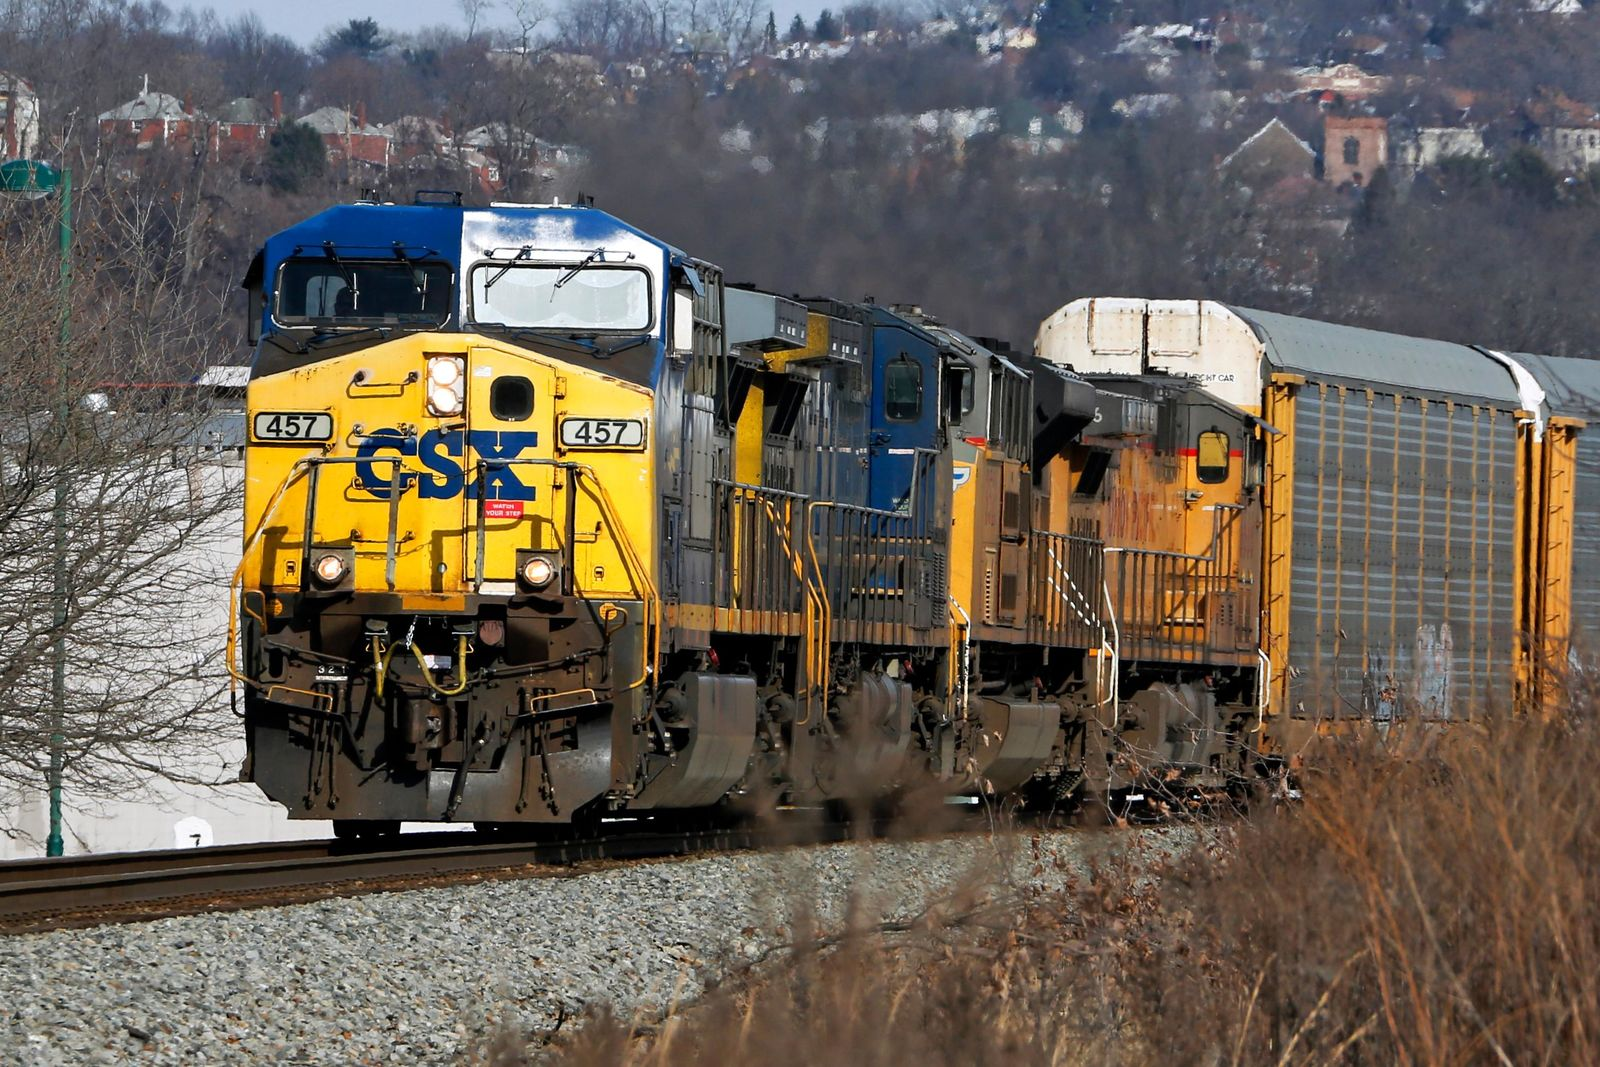 FILE- In this Feb. 12, 2018 file photo a CSX Transportation Inc. freight train passes through Homestead, Pa. More than two dozen major companies ranging from Campbell Soup to Kia filed anti-trust lawsuits on Sept. 30, 2019 against the nation's four largest railway companies, contending the railroads had a price-fixing scheme to illegally boost profits.(AP Photo/Gene J. Puskar, File)